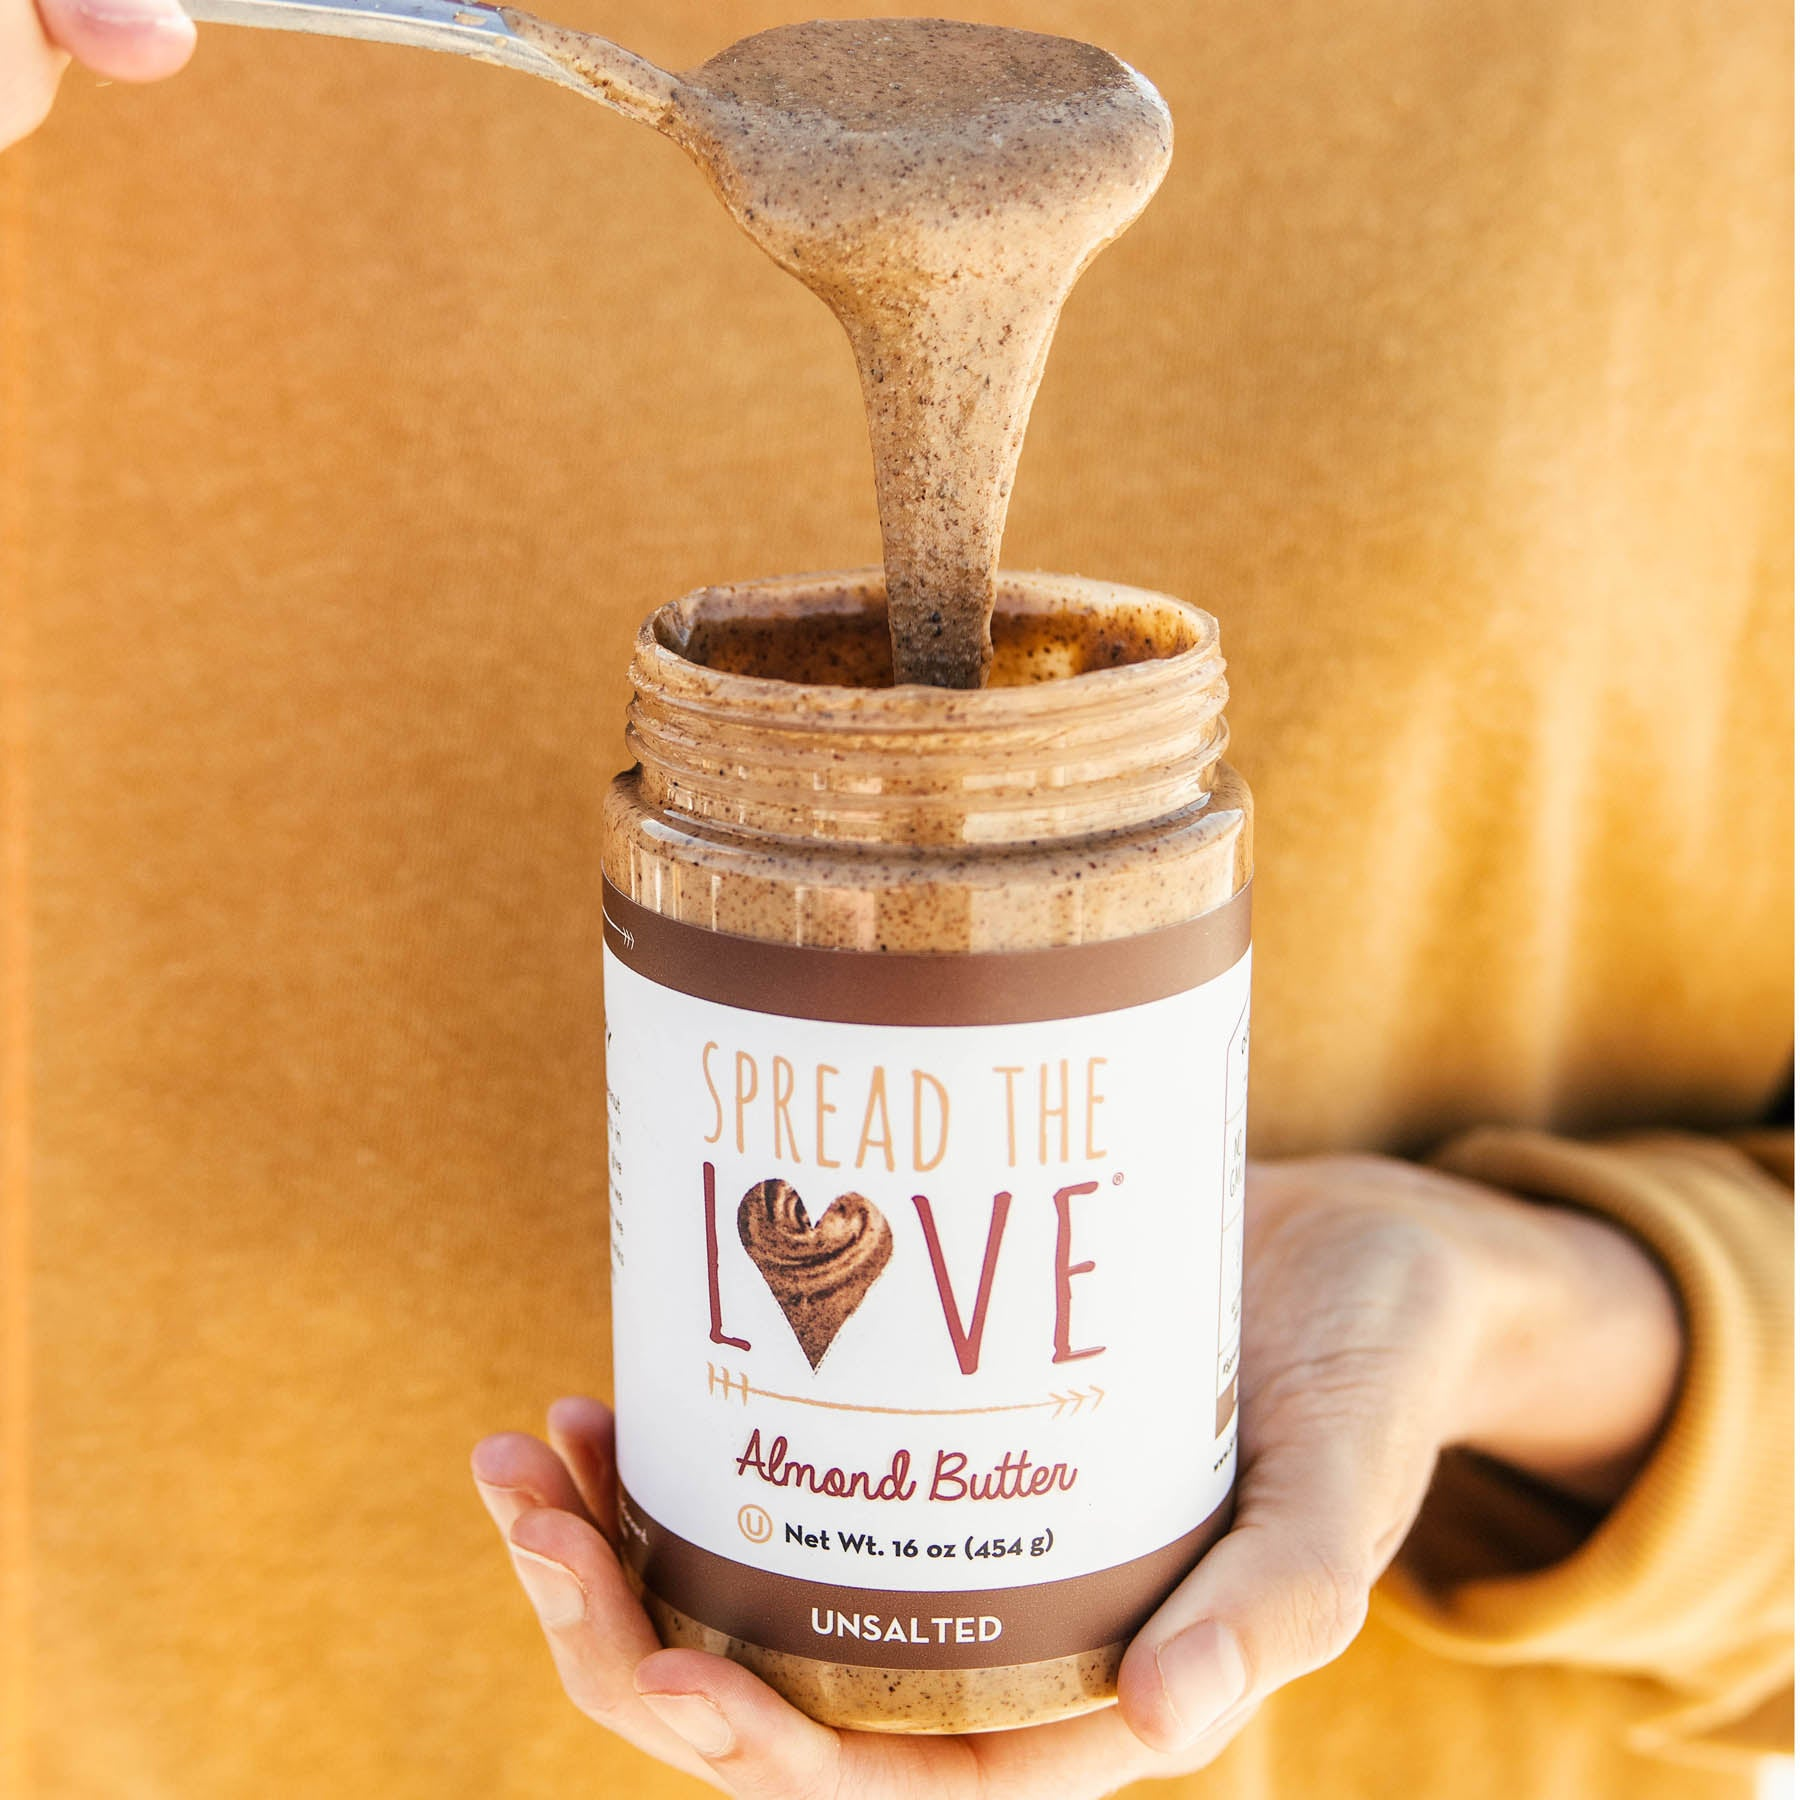 UNSALTED Almond Butter